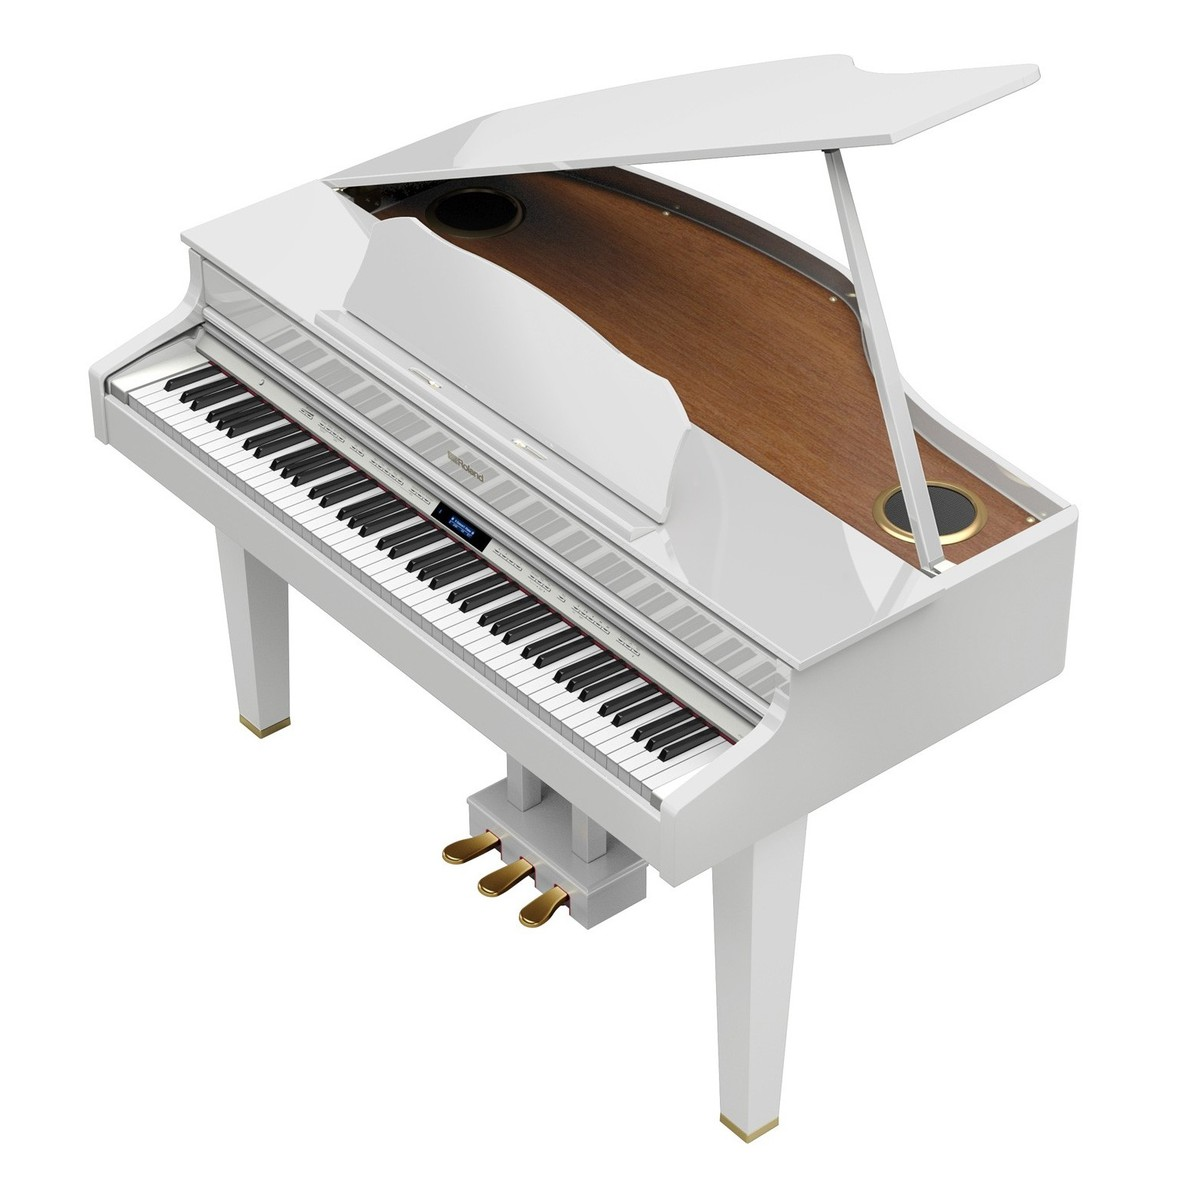 Piano queue num rique roland gp607 blanc brillant for Piano blanc a queue